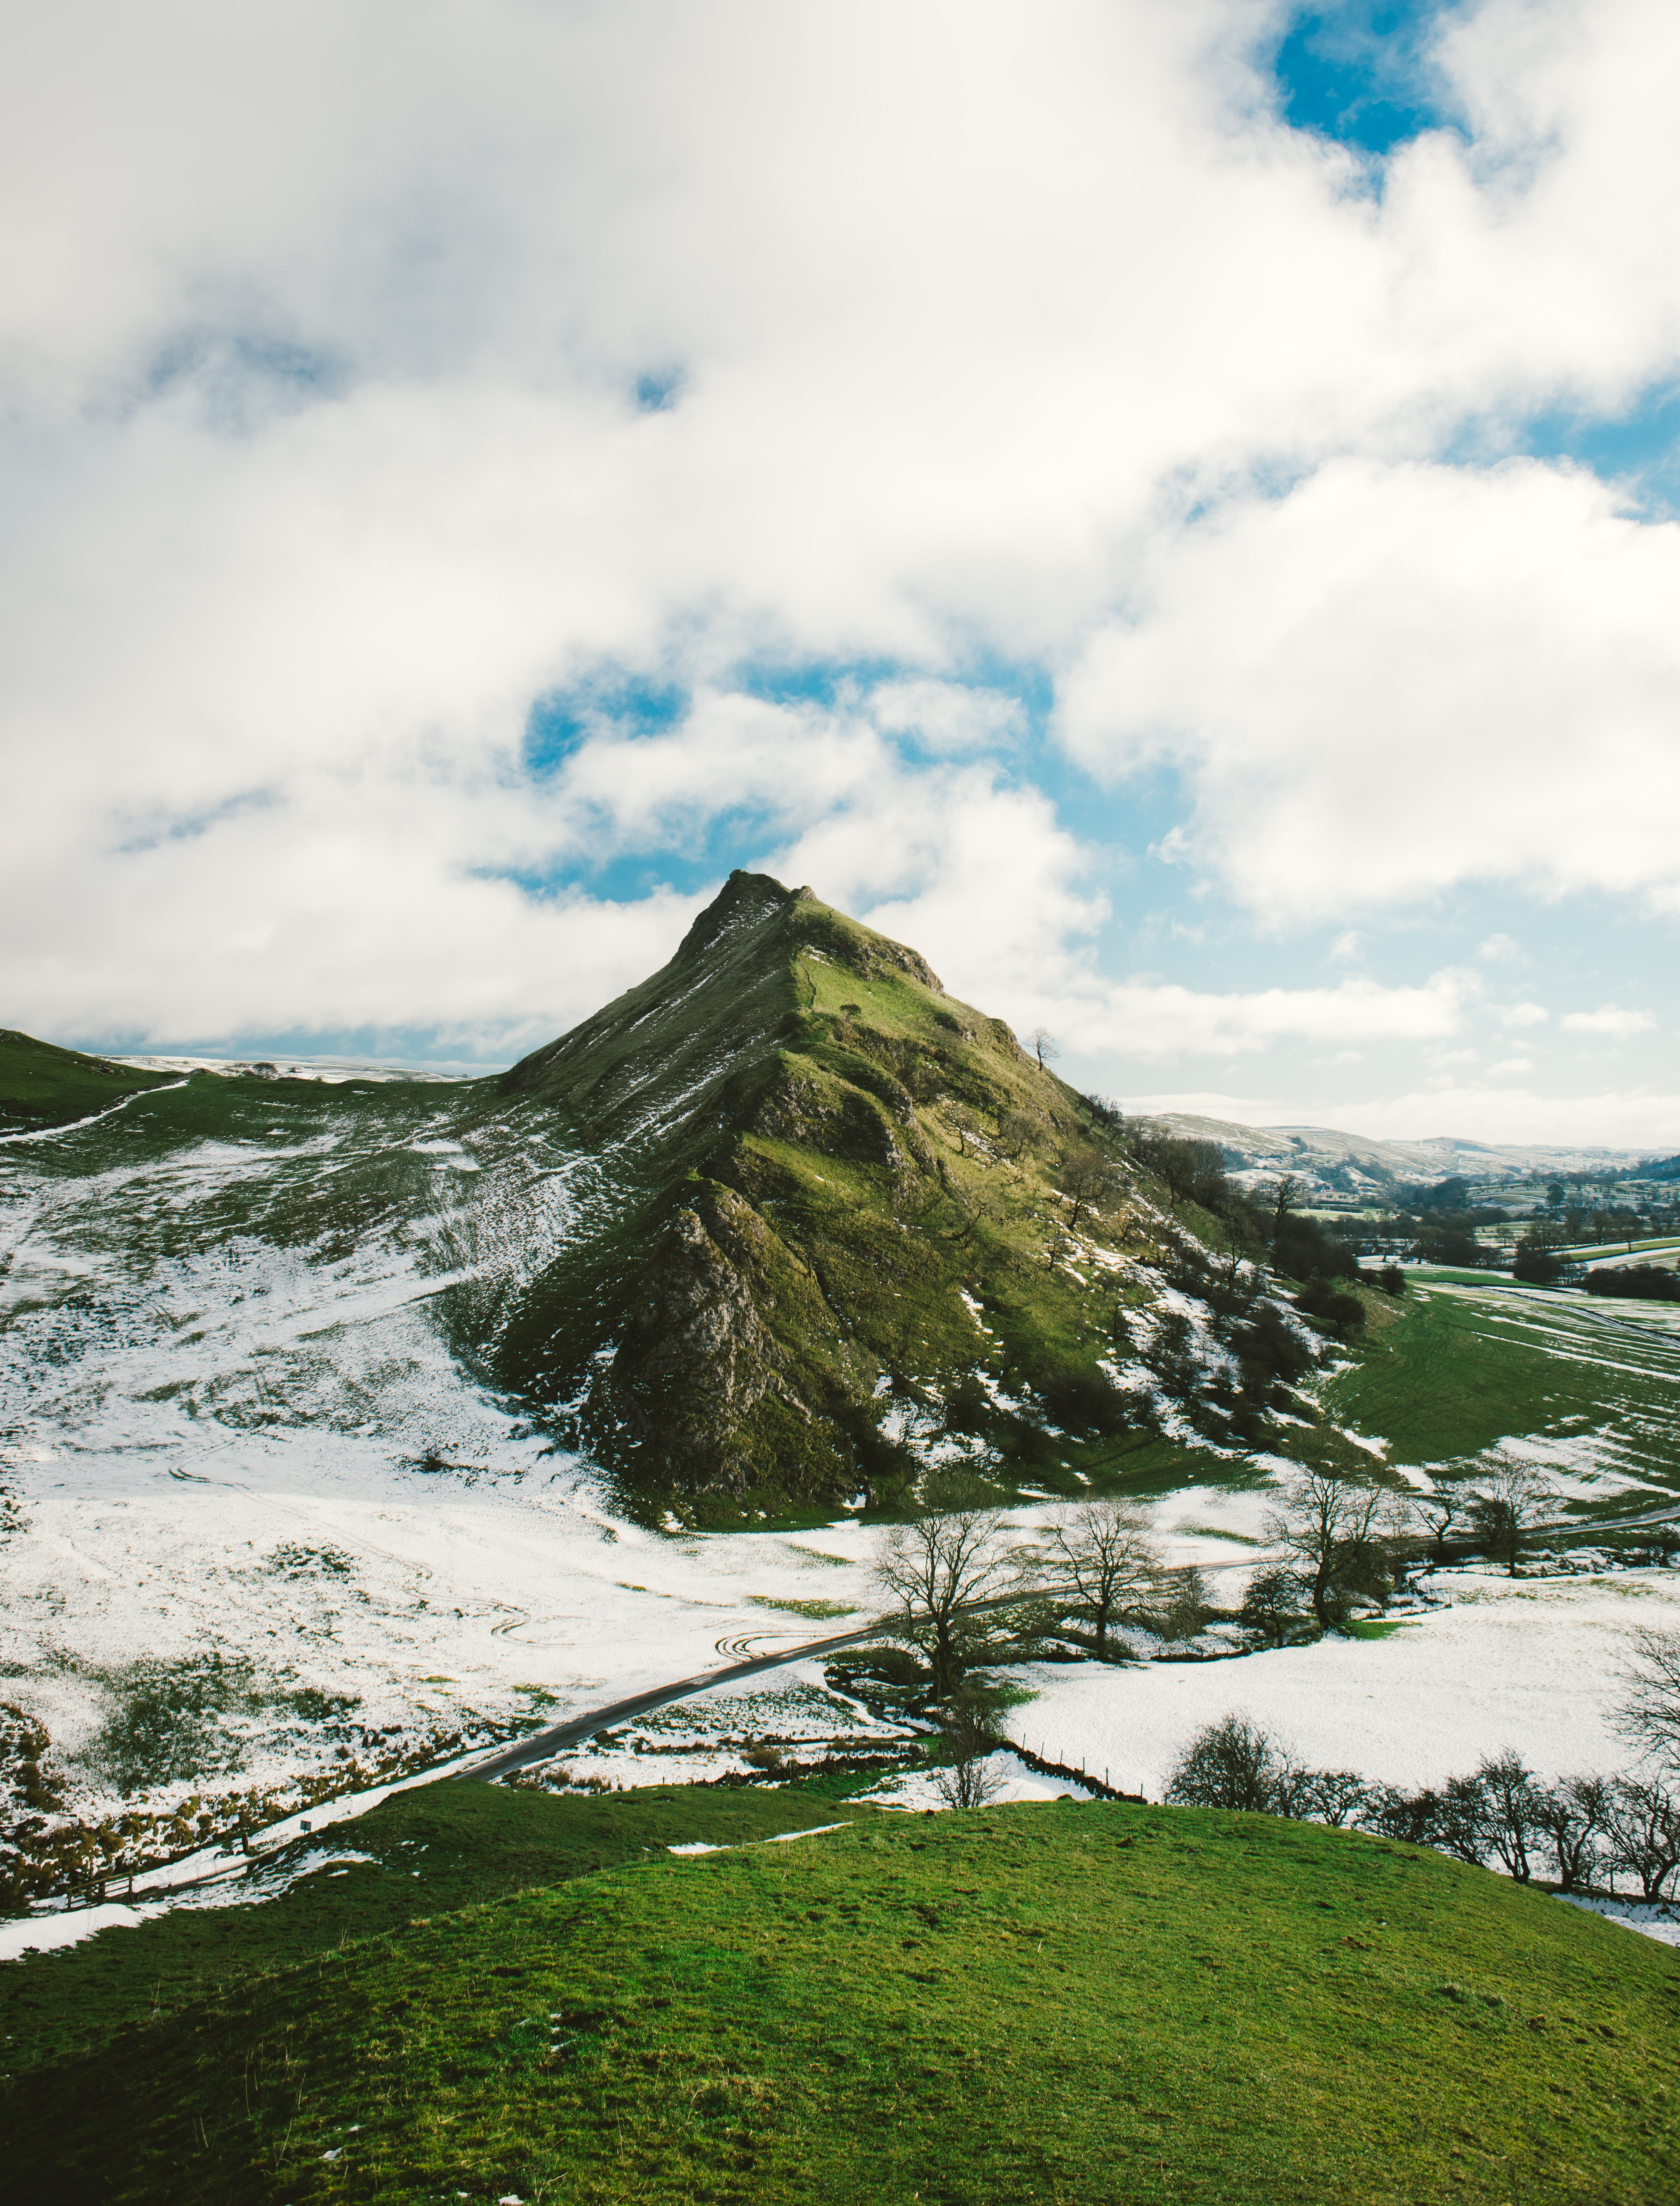 snowy hill under white clouds at daytime